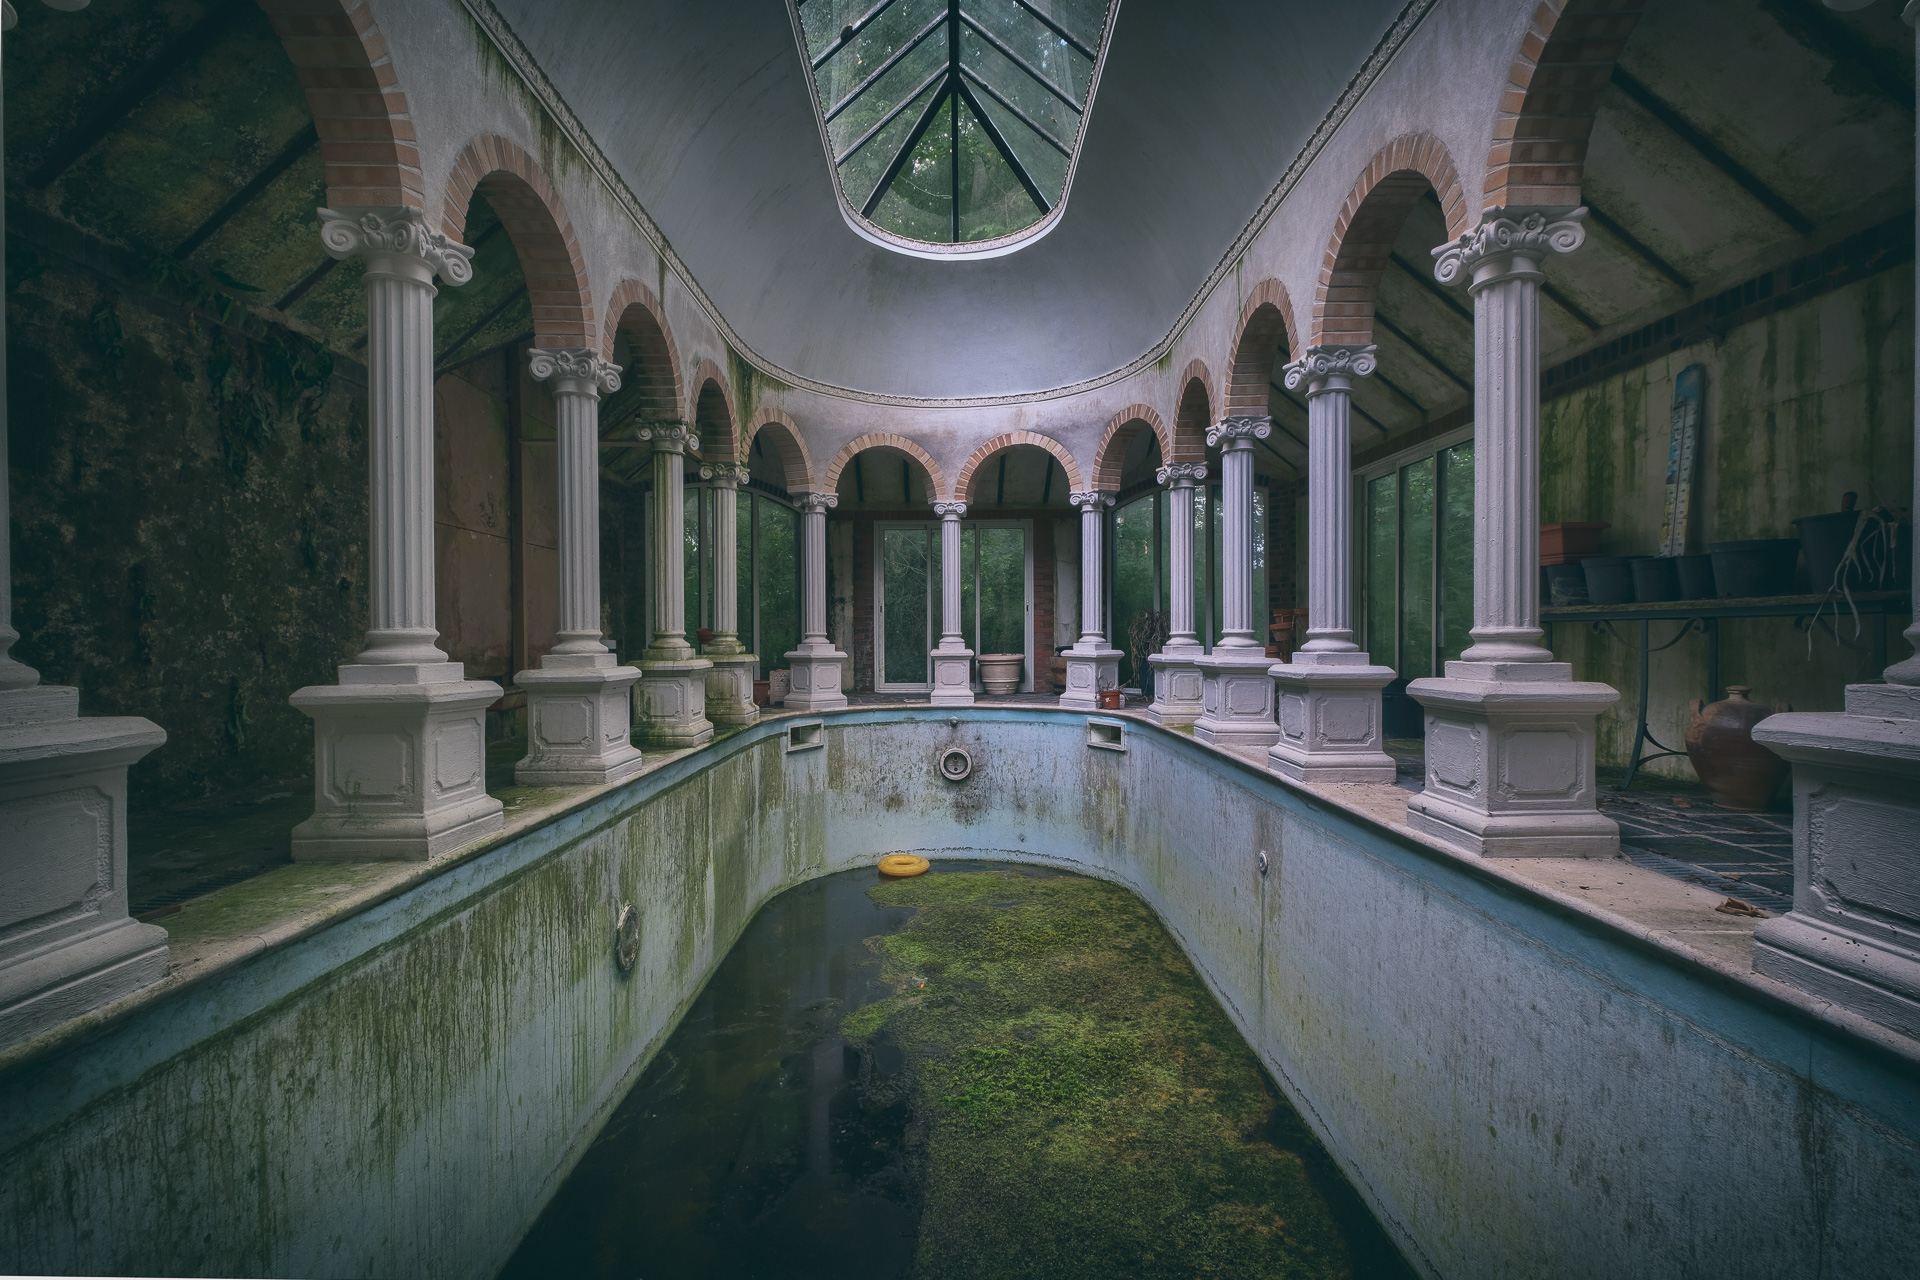 Millenium Swimming Pool | Loisirs | Lieux oubliés | Urbex | RanoPano Photography